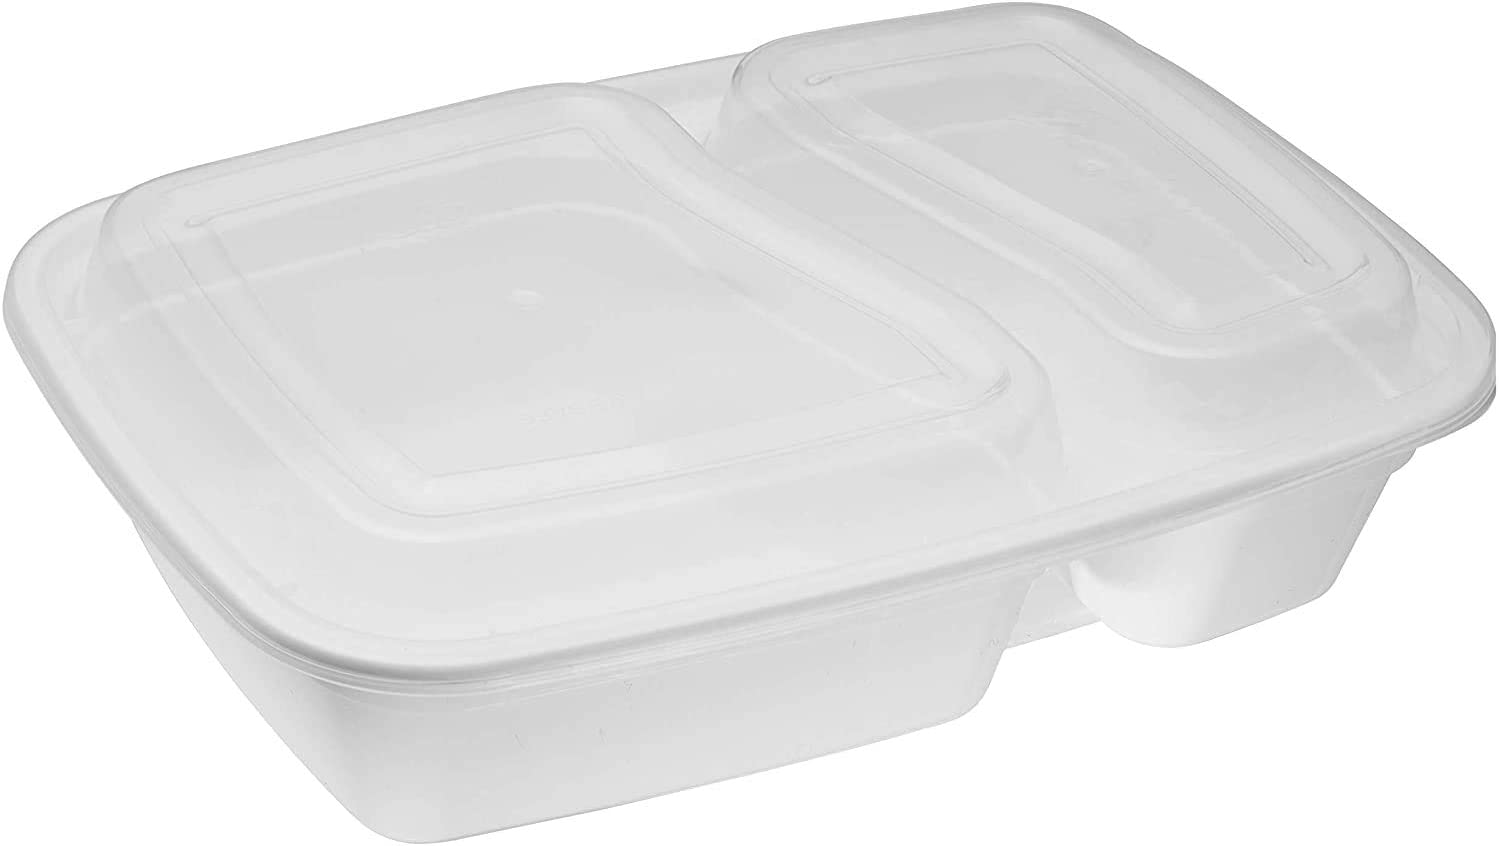 [25 Pack] Meal Prep Containers White 2 Compartment with Lids, Food Storage Bento Box, Microwavable, Disposable, Stir Fry | Lunch Boxes | BPA Free | Freezer/Dishwasher Safe (32 oz)